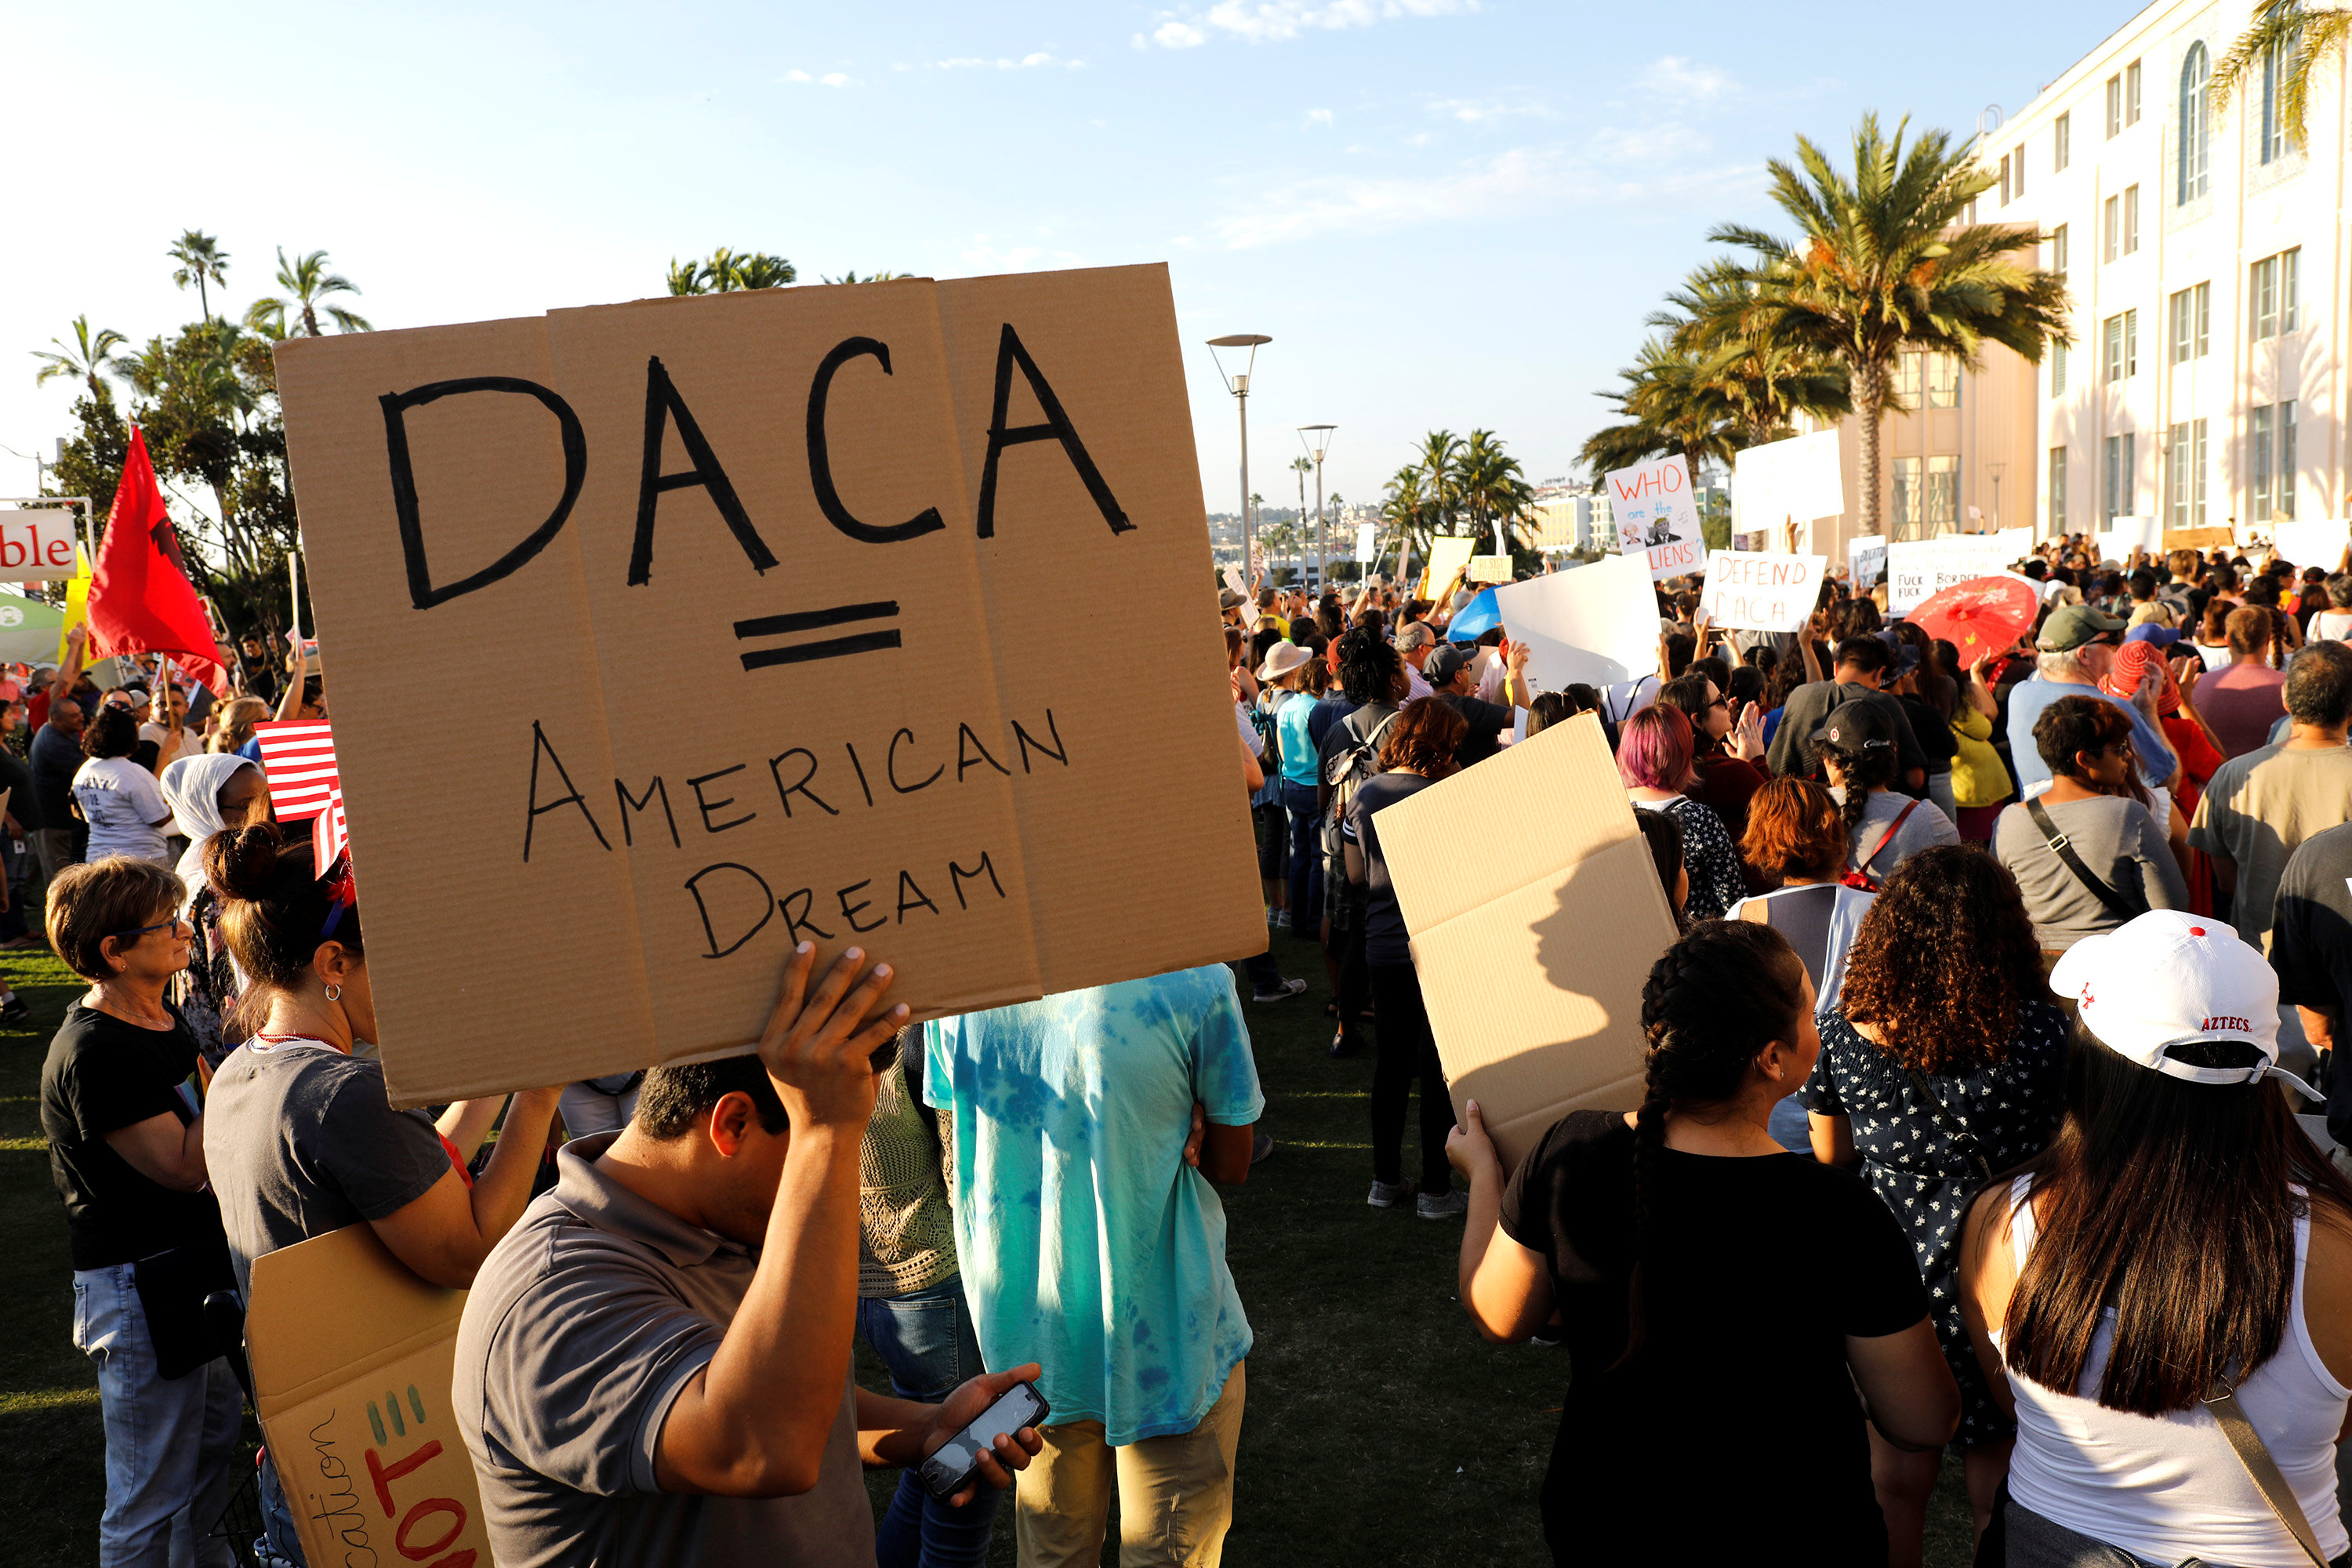 FILE PHOTO: Alliance San Diego and other Pro-DACA supporters hold a protest rally, following U.S. President Donald Trump's DACA announcement, in front of San Diego County Administration Center in San Diego, California, U.S., September 5, 2017. REUTERS/John Gastaldo